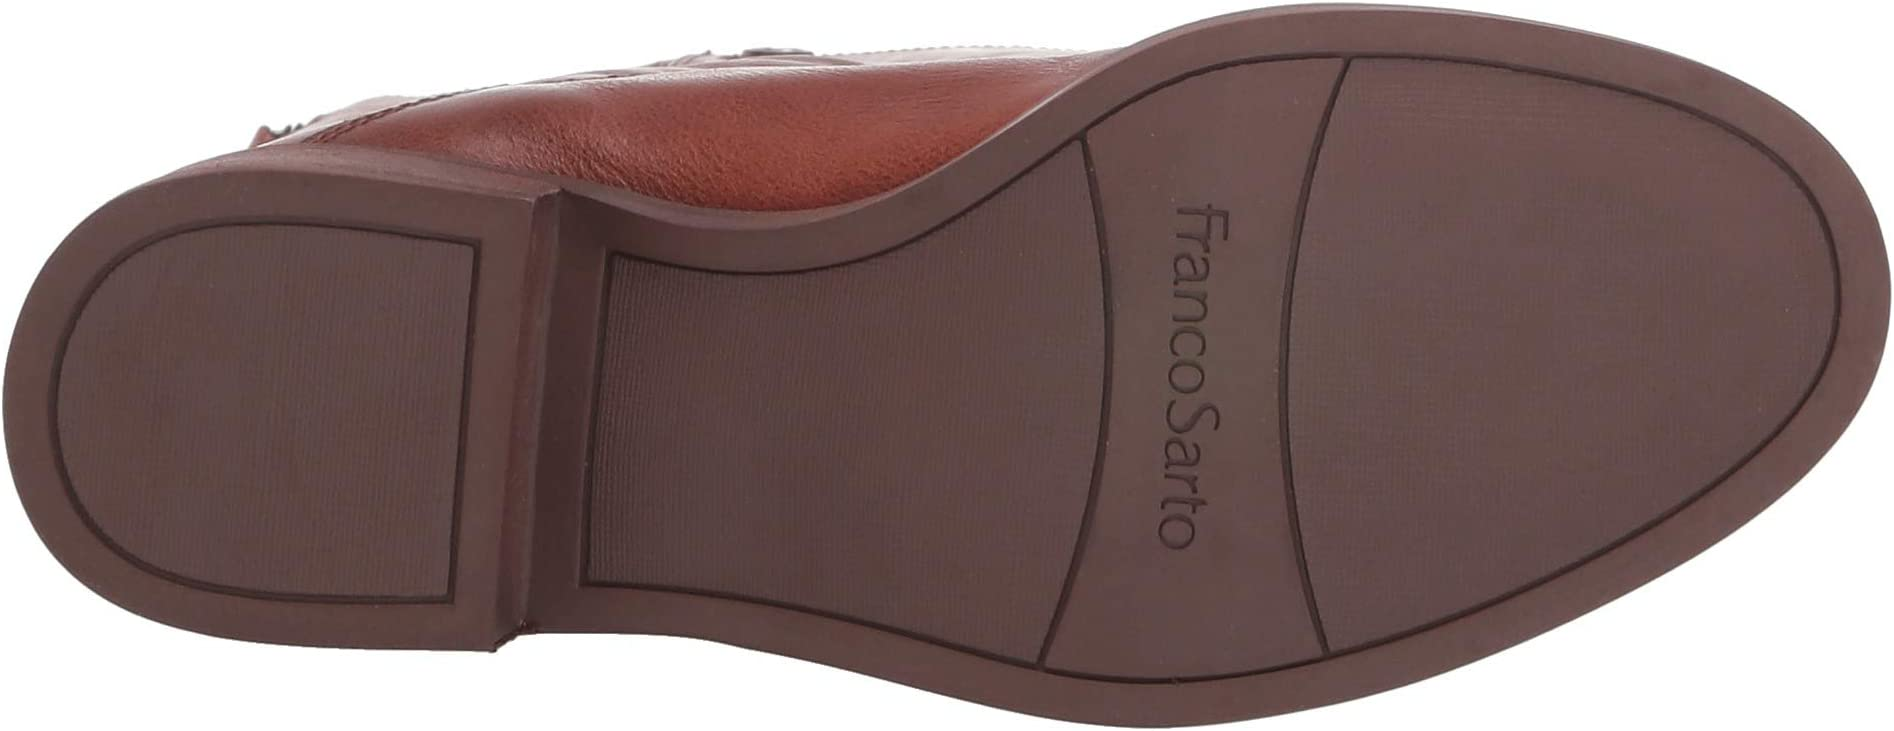 Franco Sarto Becky   Women's shoes   2020 Newest